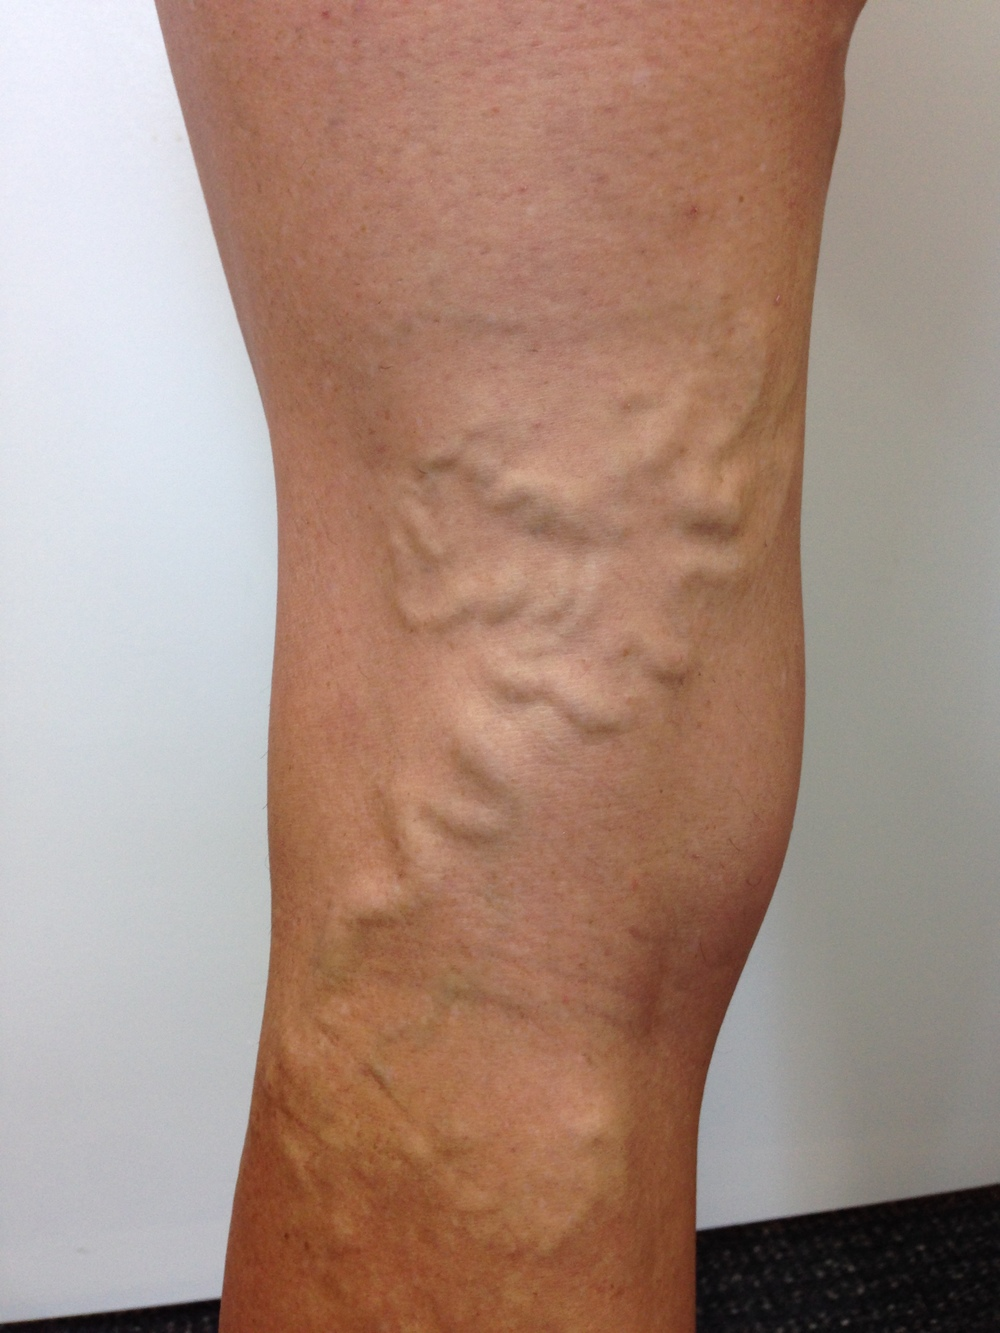 Patient presented with Varicose Veins. Female, 43 years.